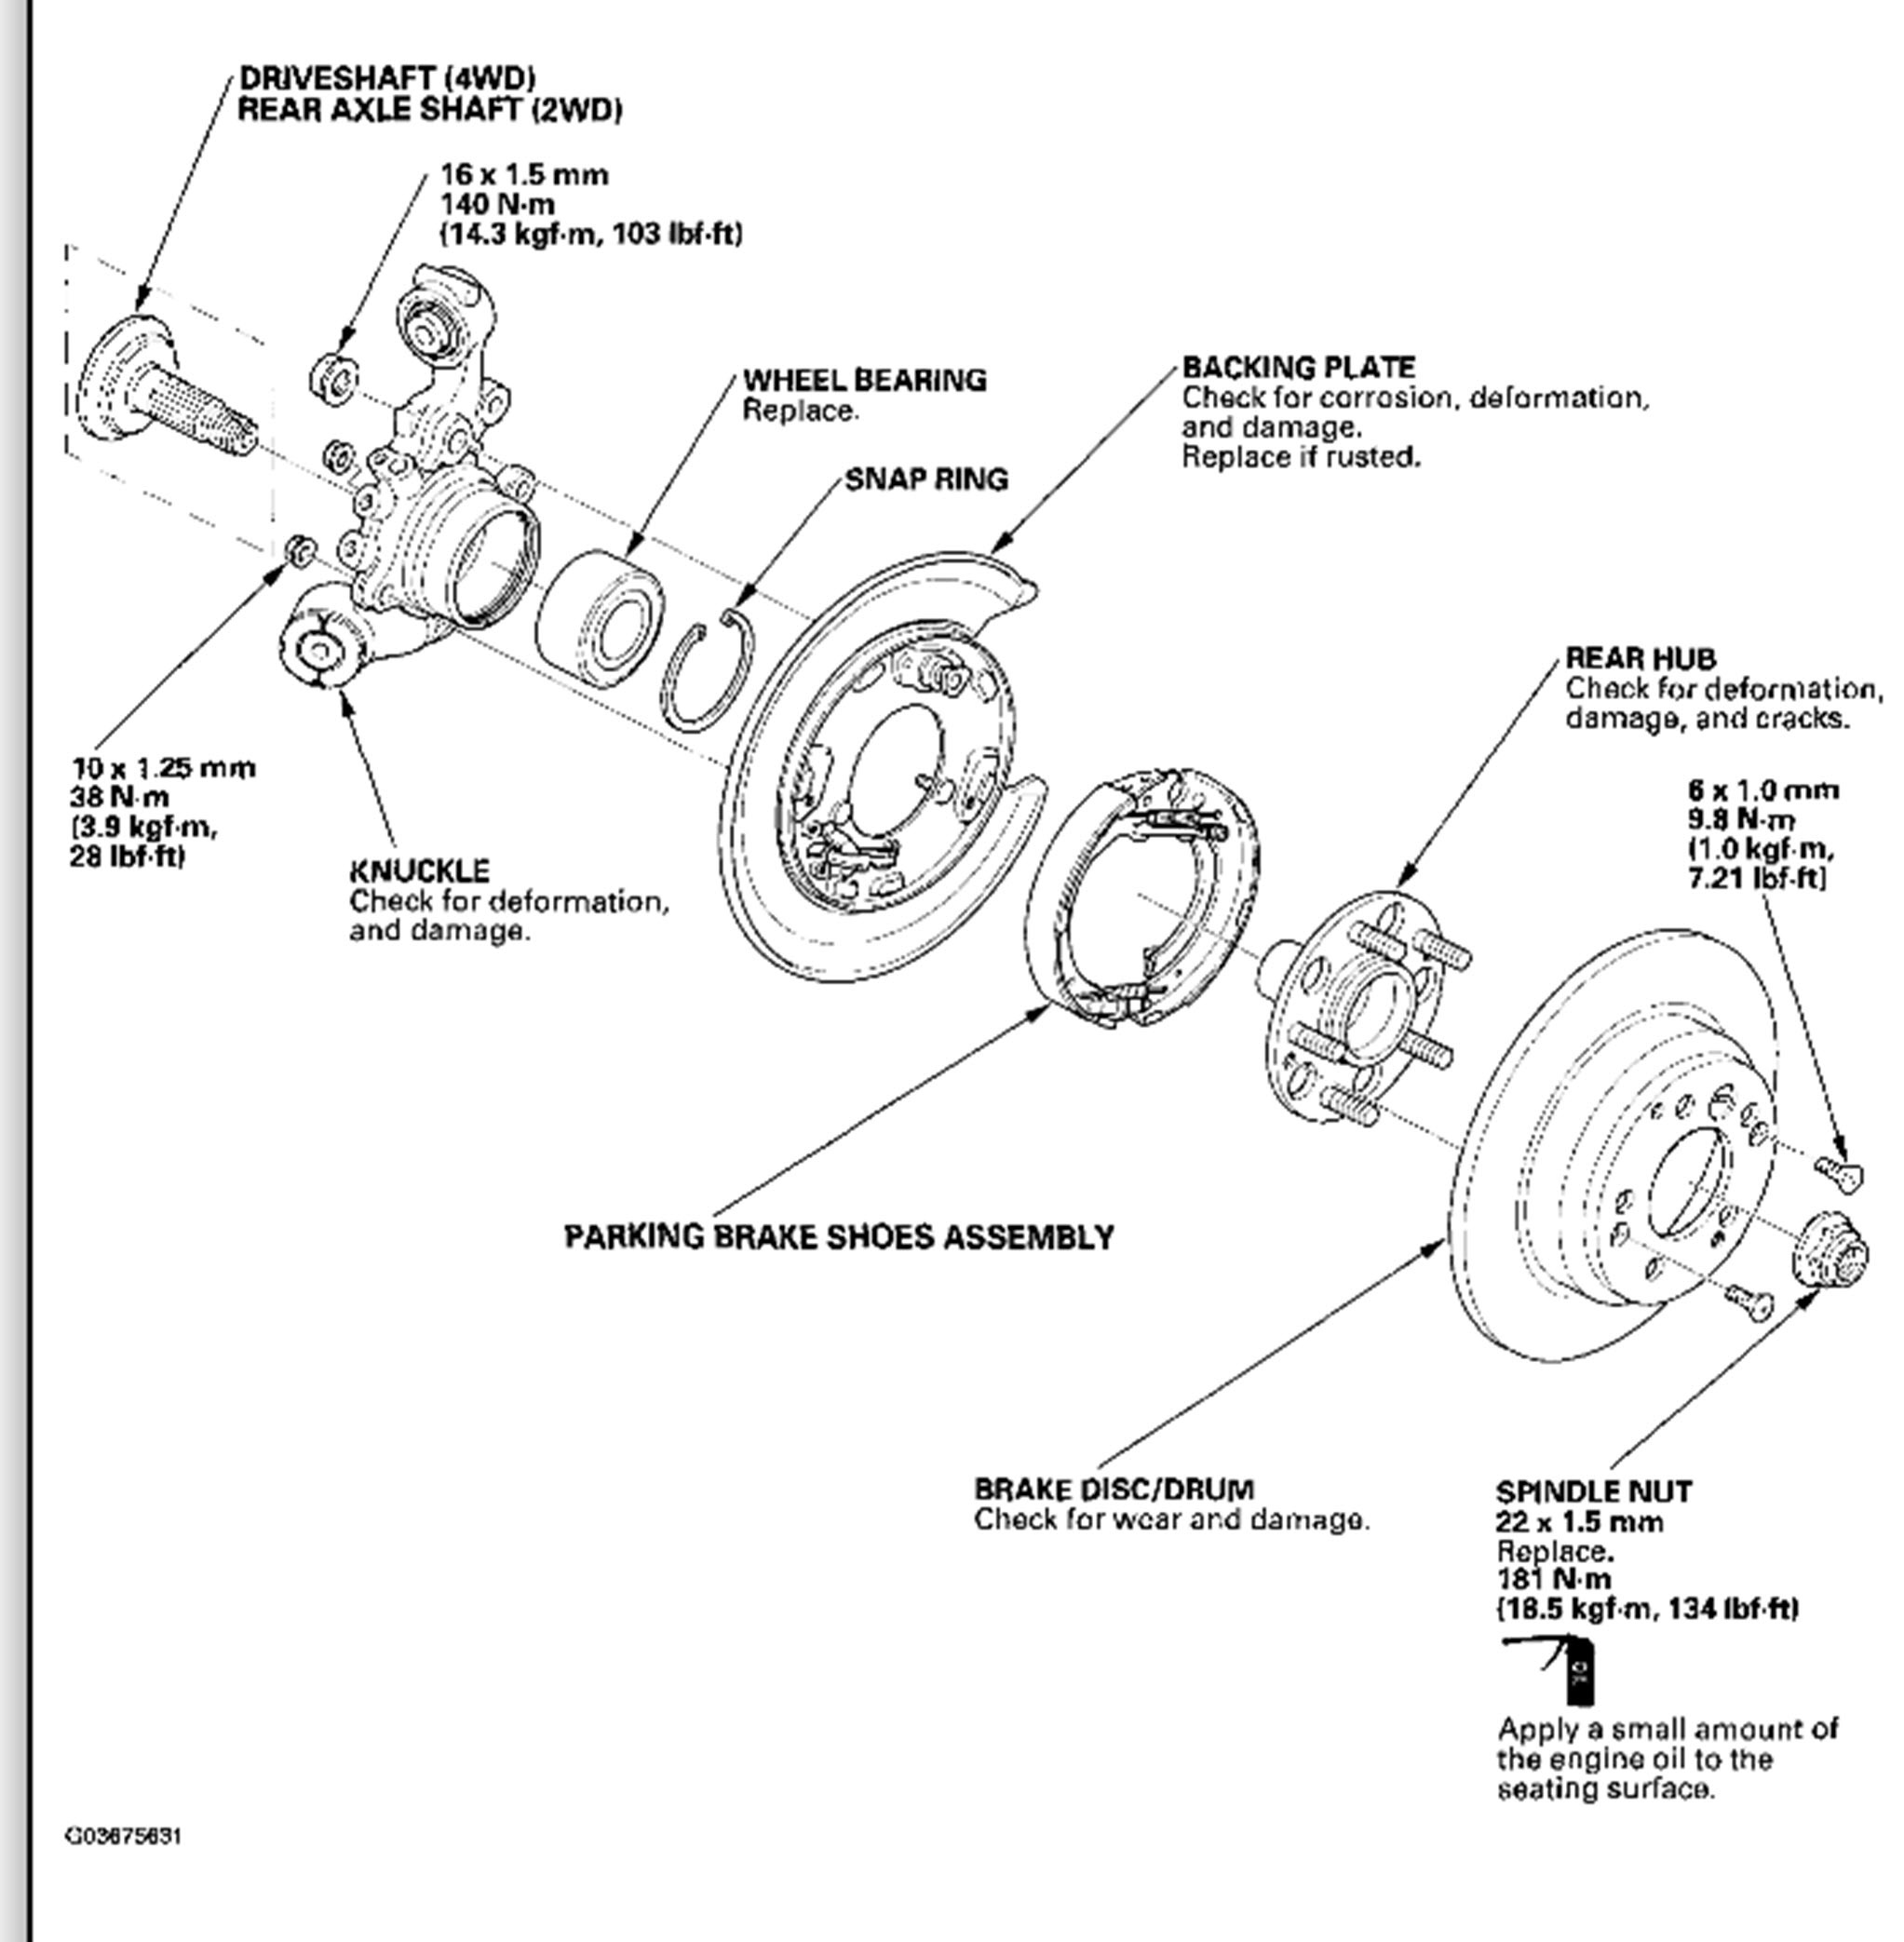 Saab 95 2001 Timing Belt Repair also Audi A6 Timing Belt Parts Diagram additionally 2006 Kia Sedona Stereo Wiring also Wiring Diagram Cadillac Dts furthermore Wiring Diagram Besides 2005 Saab 9 3 Headlight. on 1999 saab 9 3 wiring diagram